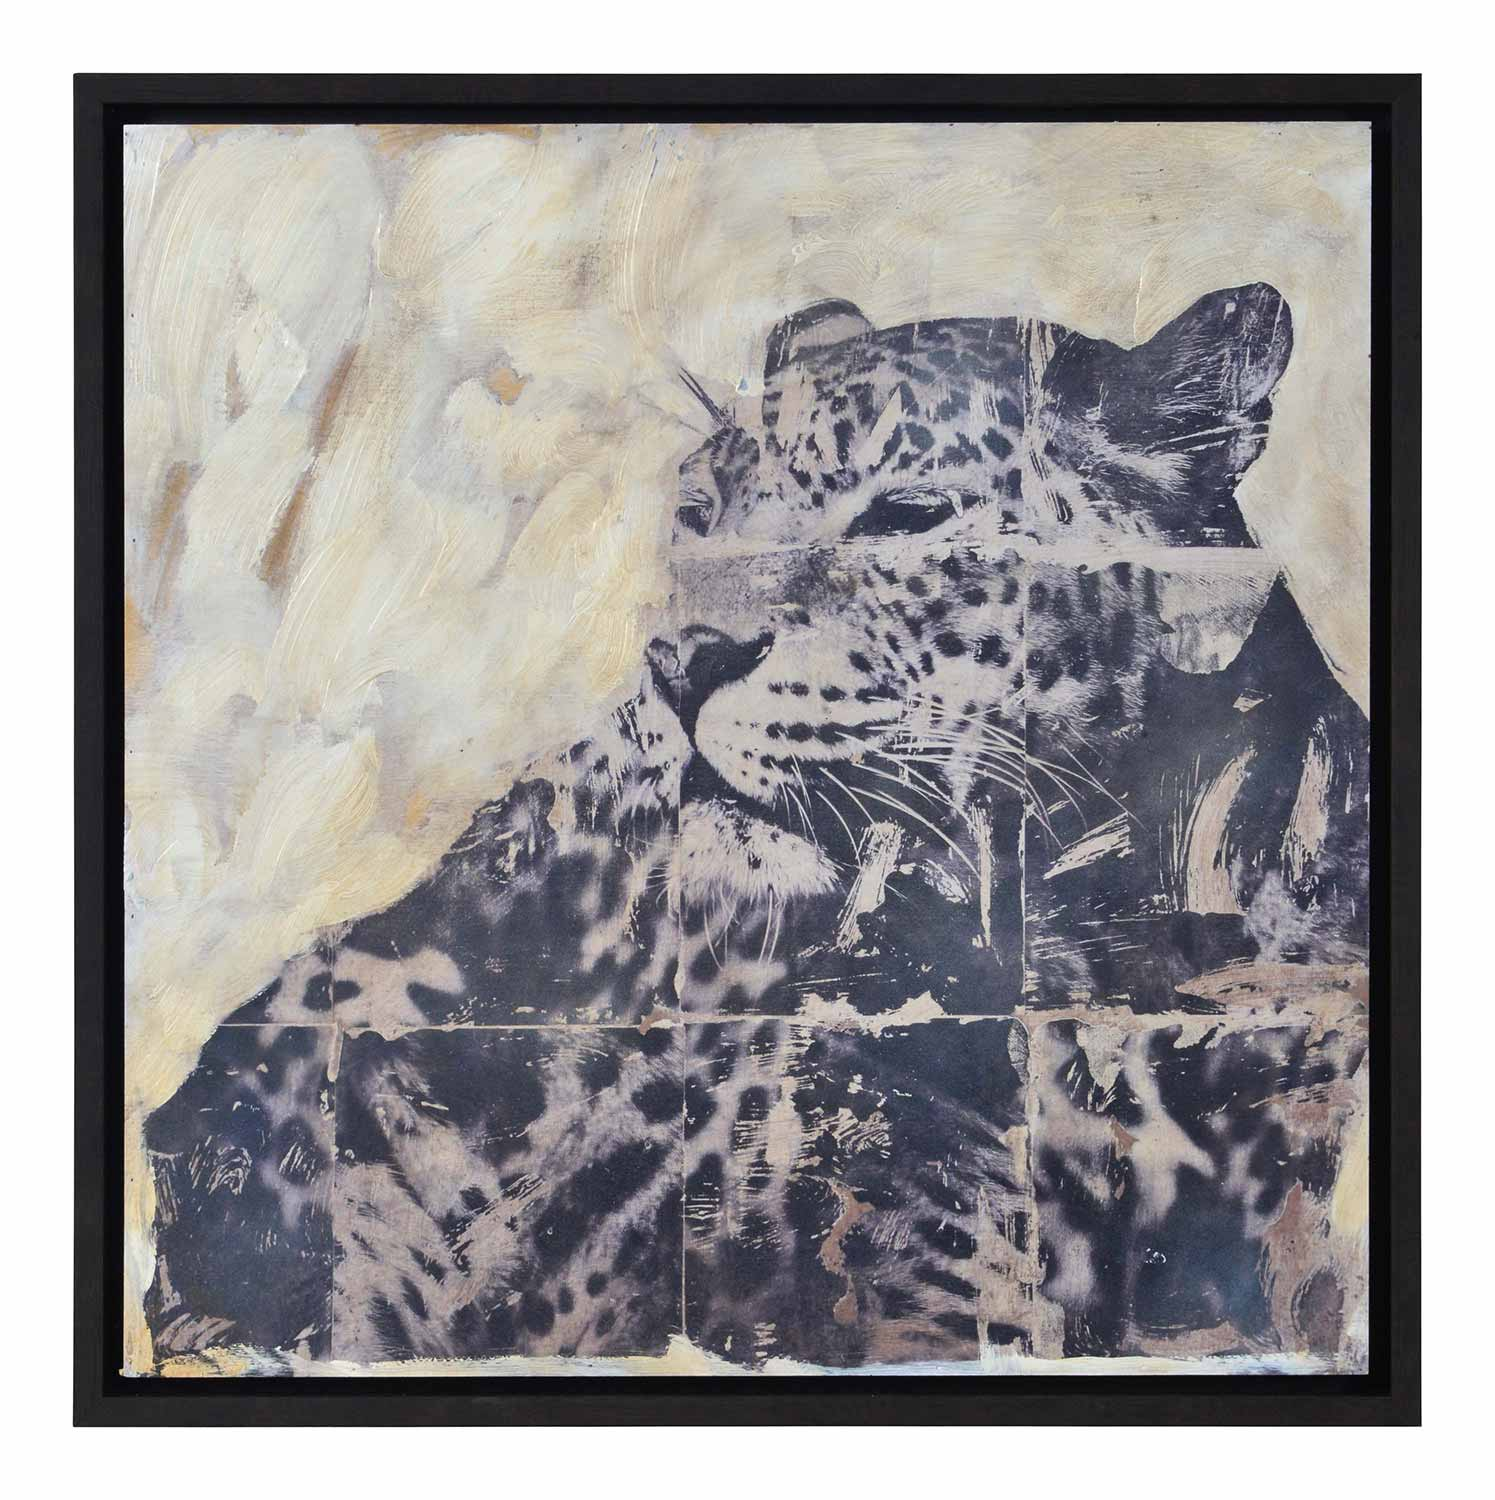 Ren-Wil Wyler Wall Decor Painting - Black